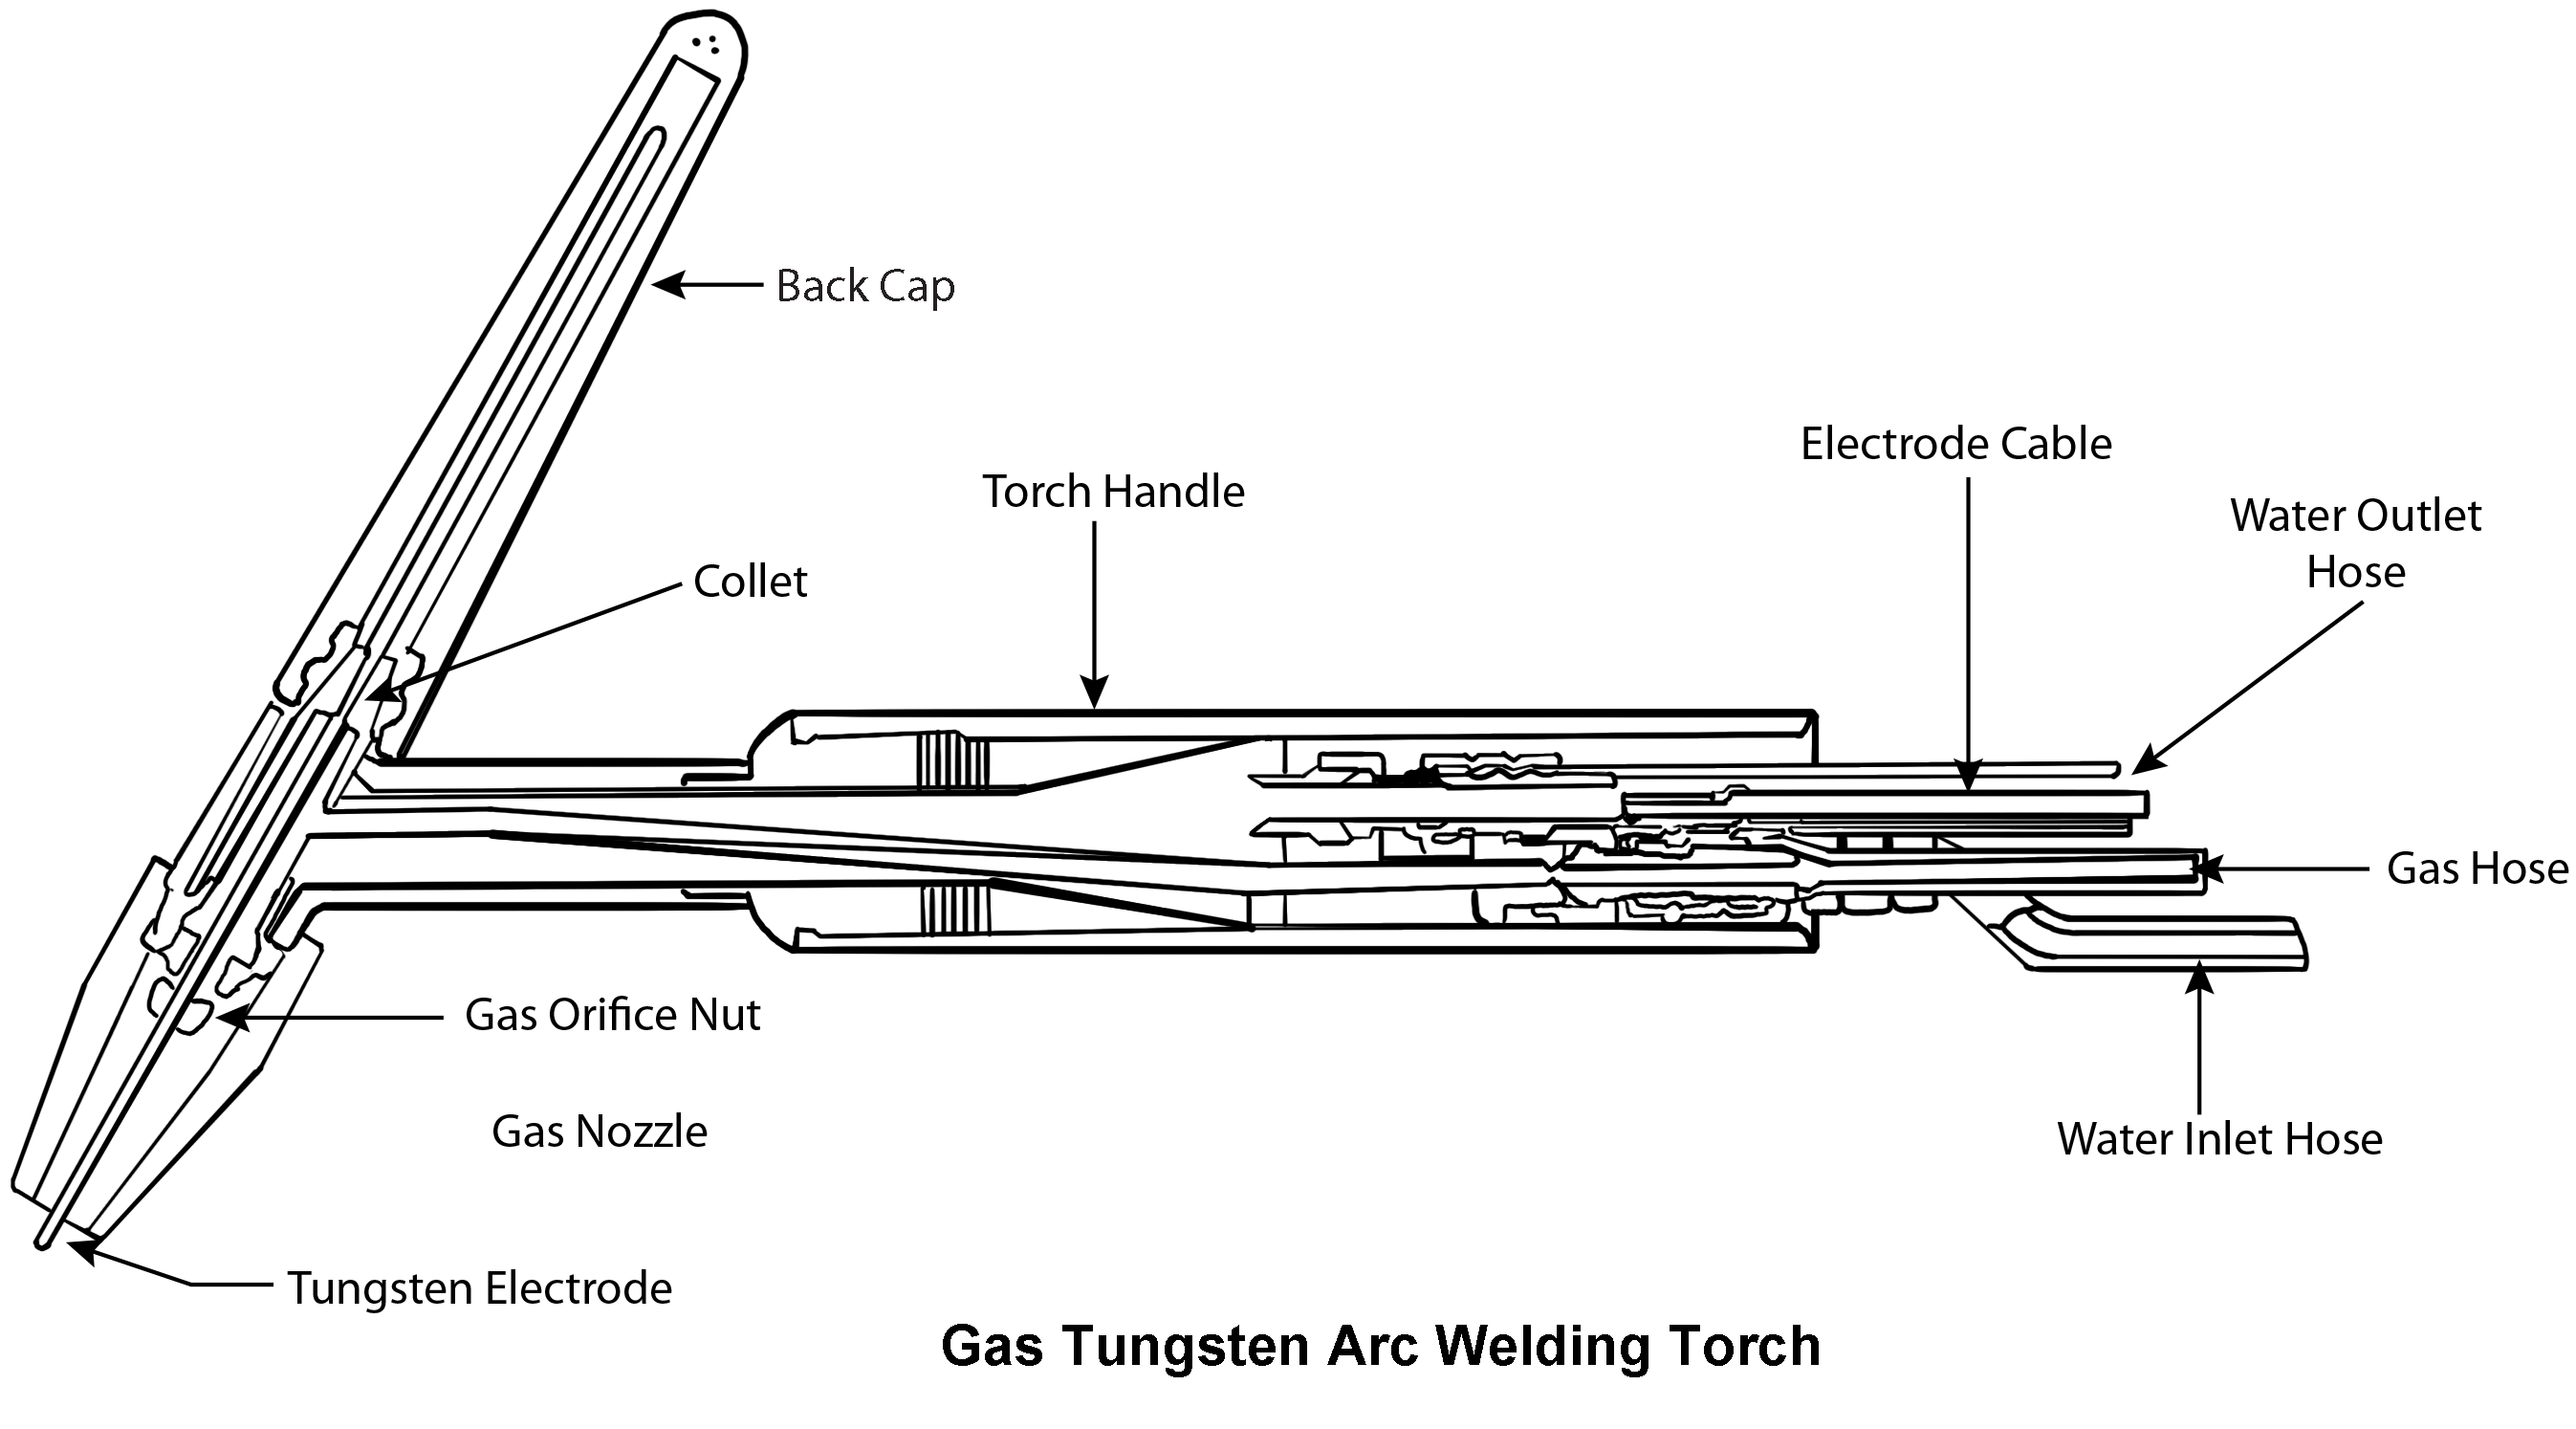 220 welder wiring diagram rm 2758  tig welding torch diagram schematic wiring  tig welding torch diagram schematic wiring